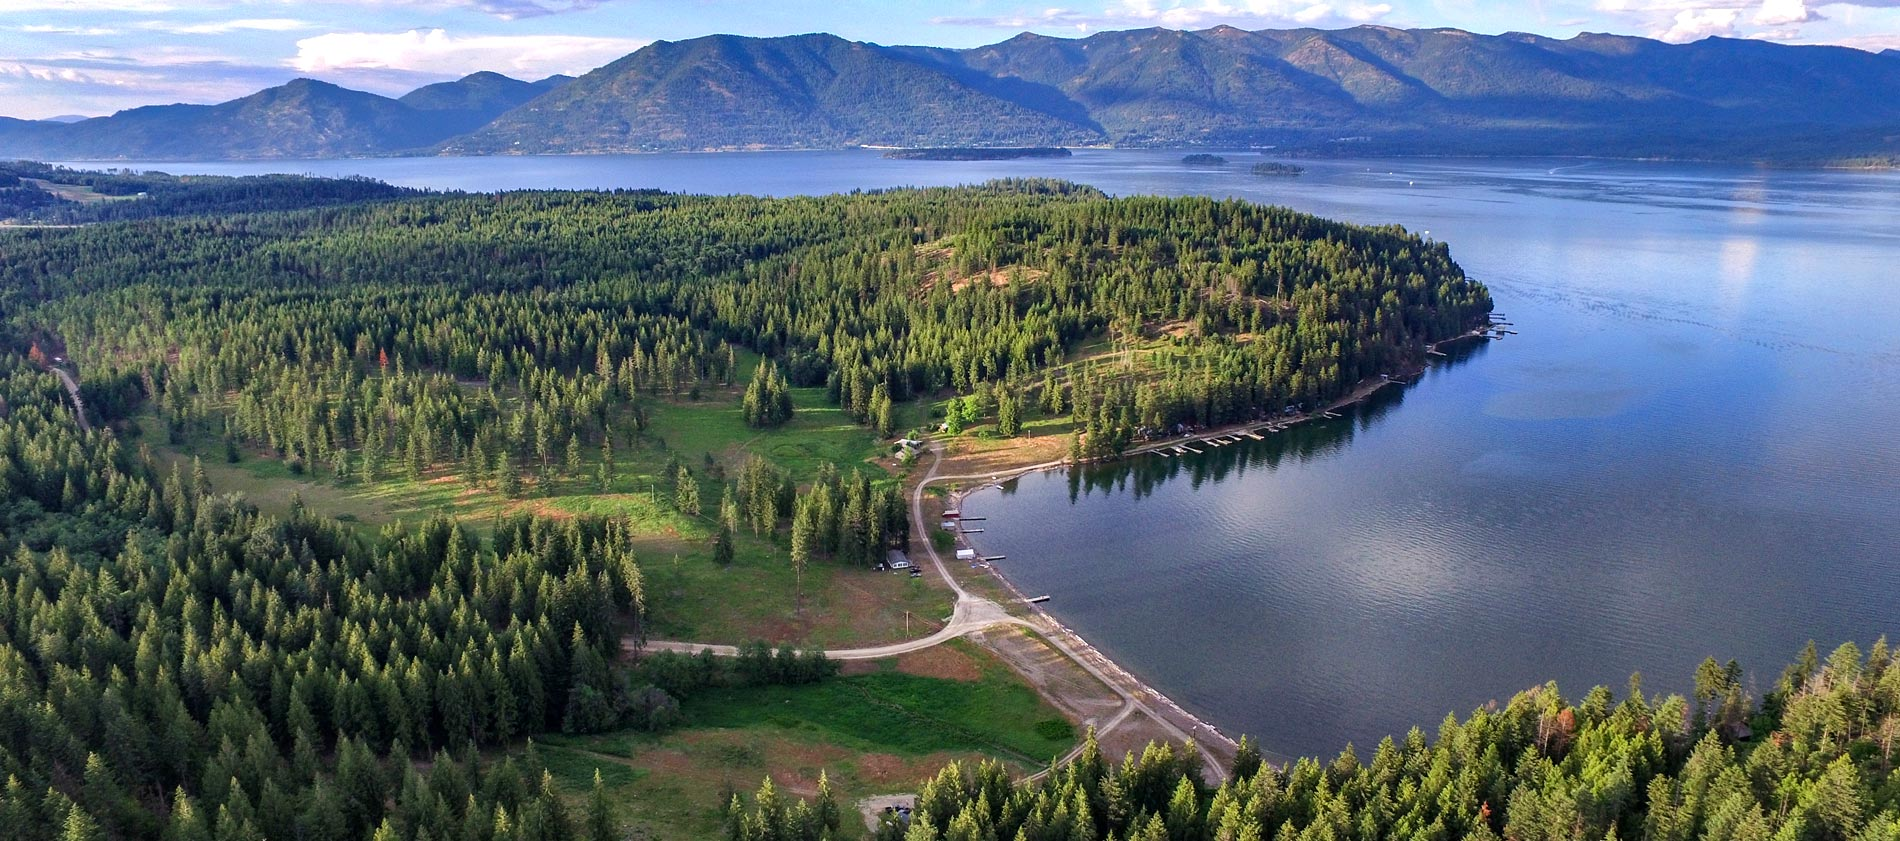 Camp Bay Estate 407 Acres and over 3000 feet of waterfront on Lake Pend Oreille